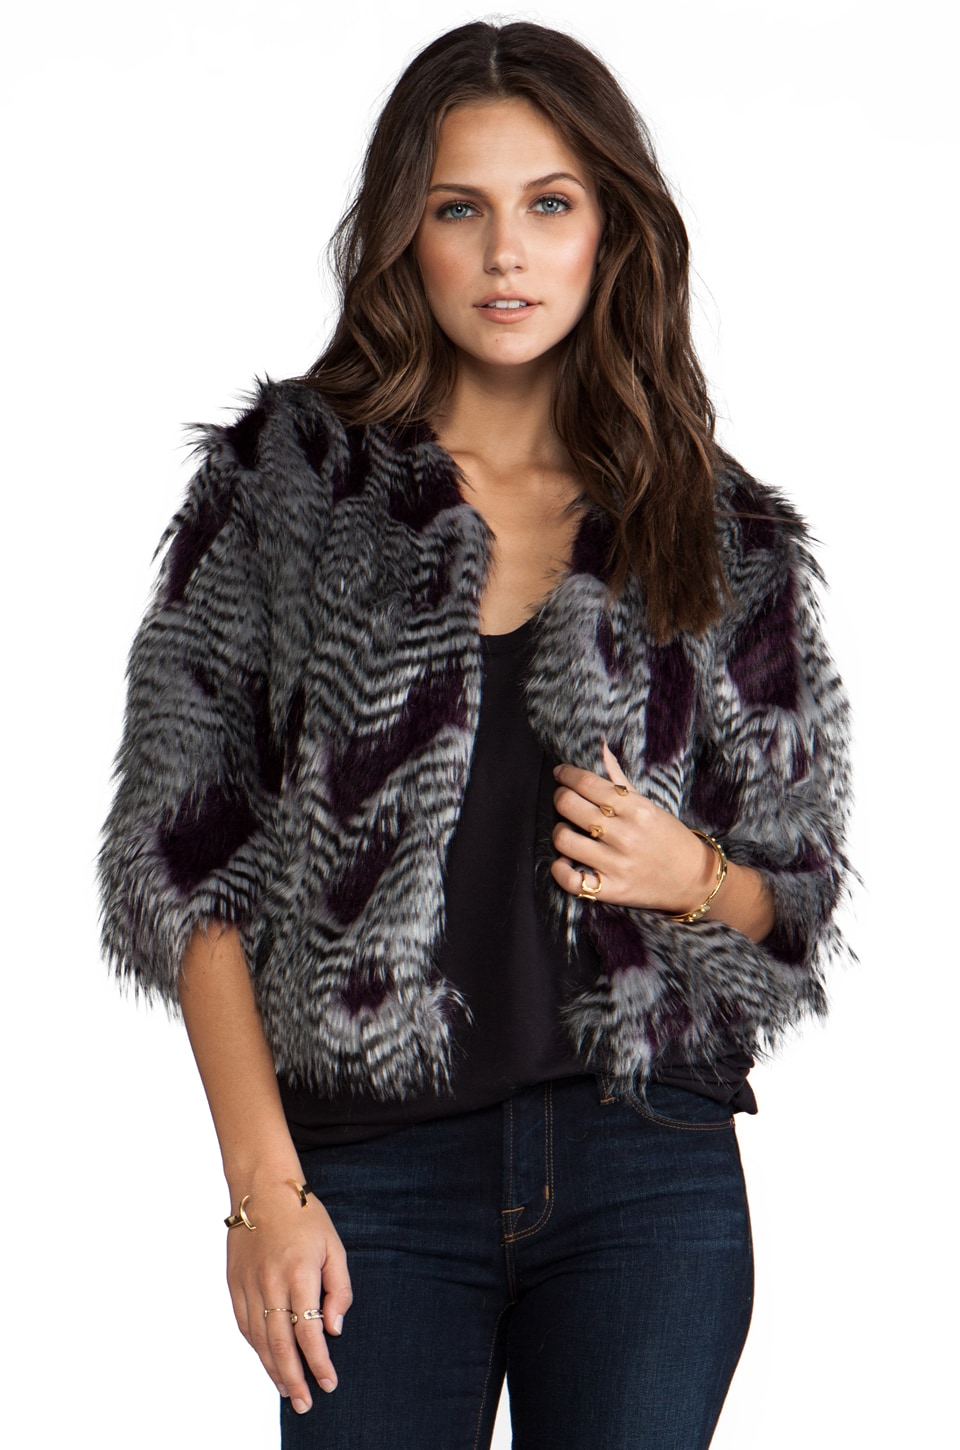 BSABLE Jennie Faux Fur Jacket in Burgundy Feather